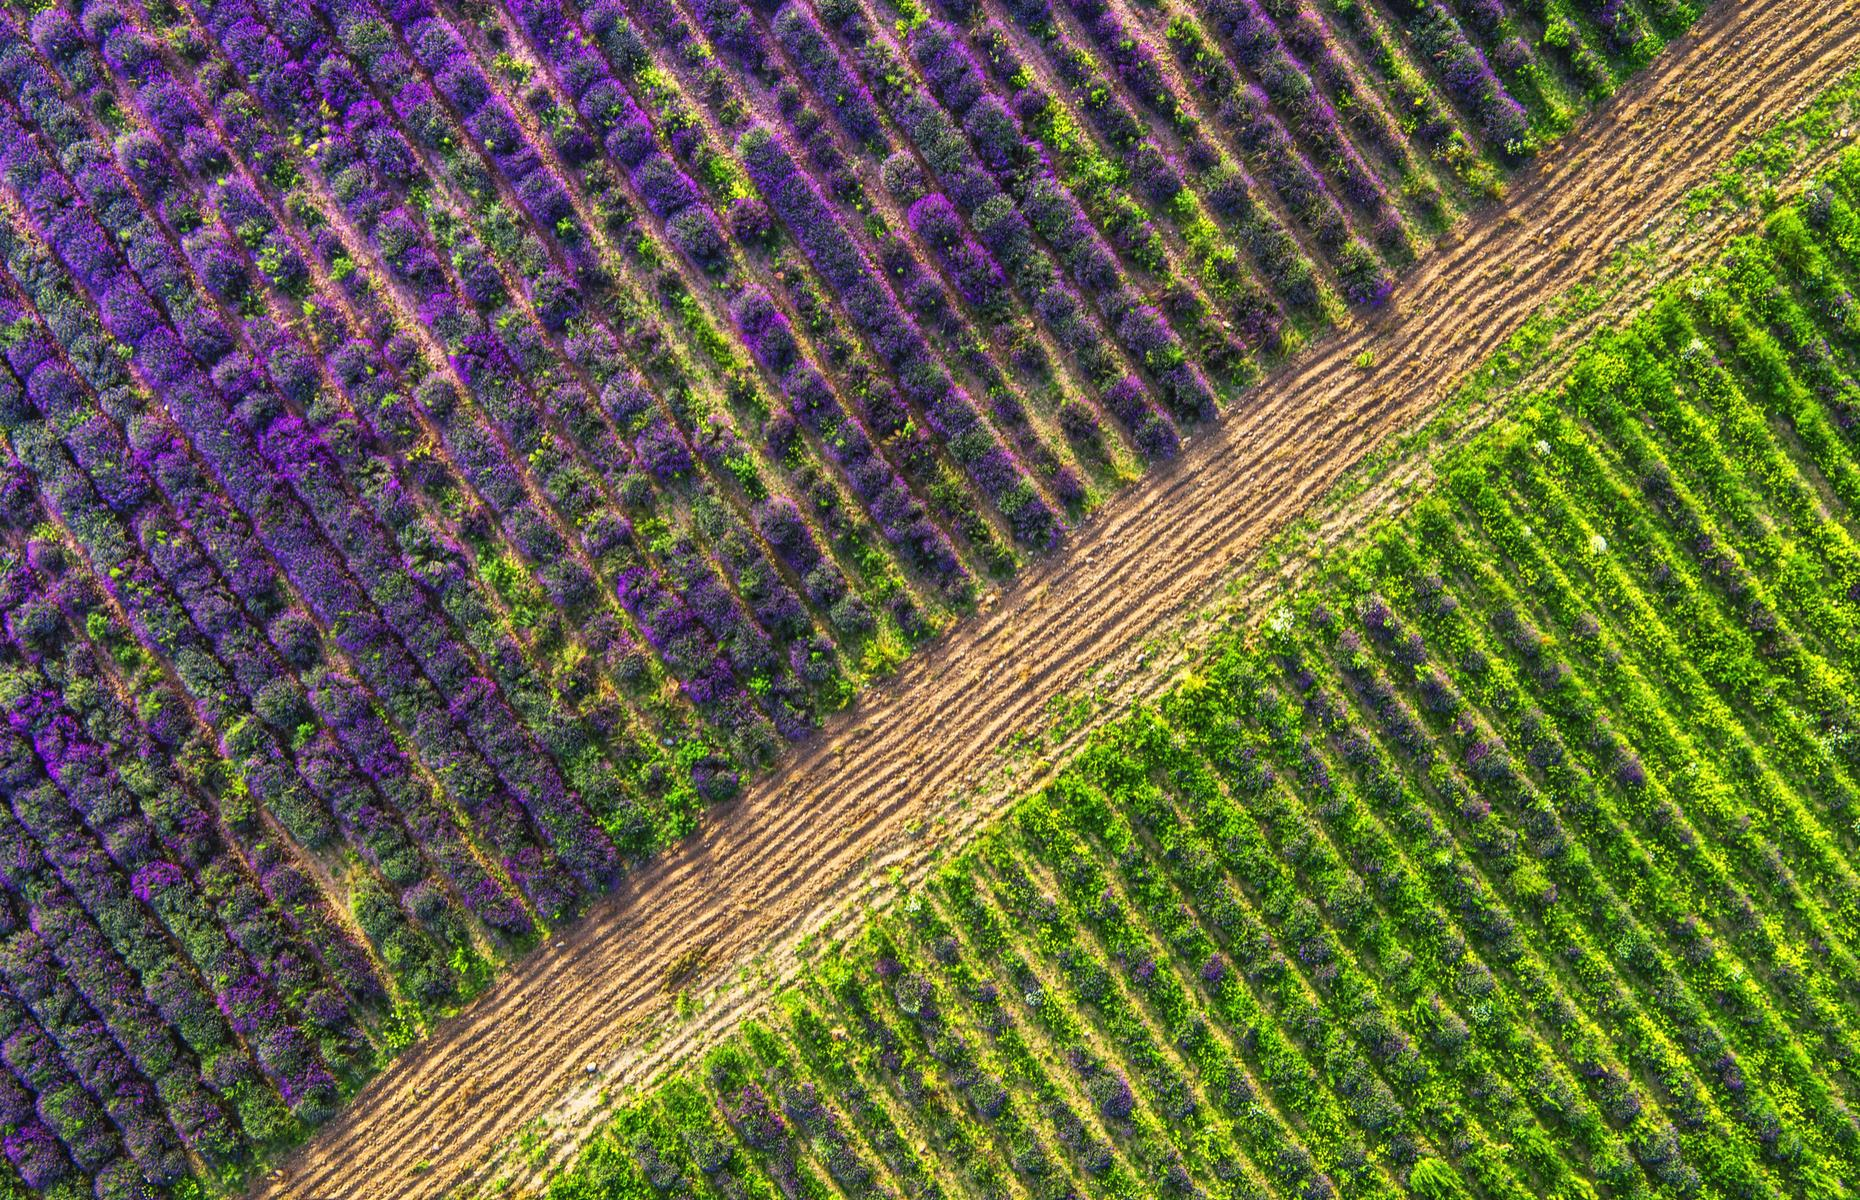 Slide 23 of 43: The lavender fields of France's Provence region explode in a fragrant haze of purple from around mid-June up until August (though they're at their peak in early July). Looking down, though, you can admire the precise lines of purple sweeping in diagonal lines across the landscape.